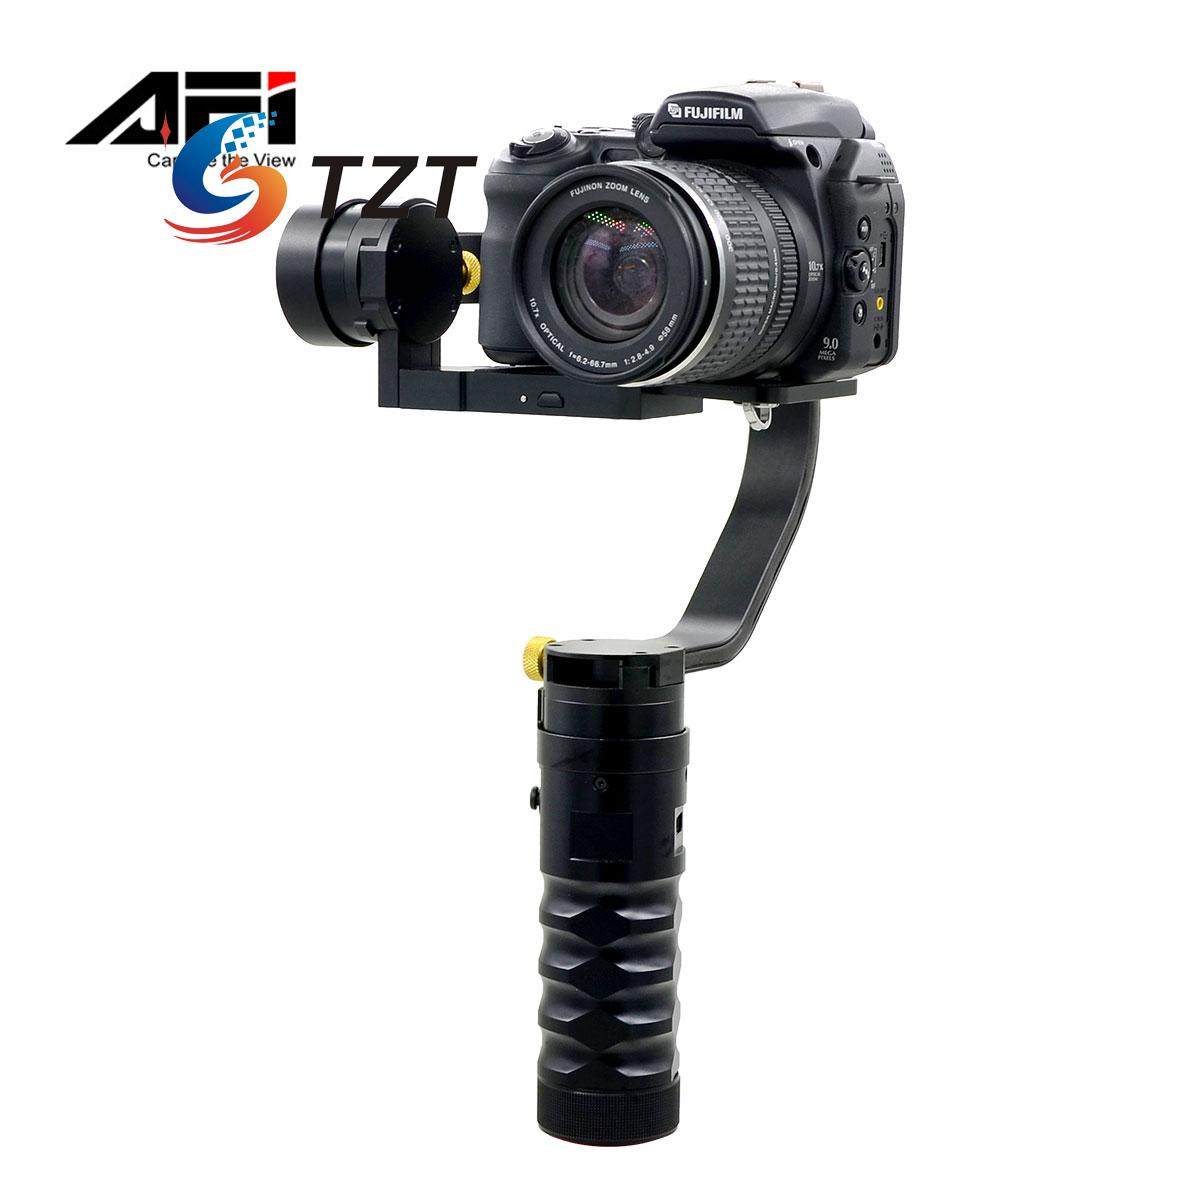 VS-3SD Handheld Brushless Gimbal 3 Axis Steady Camera Stabilizer 32bit Processor for Canon Nikon Sony DSLR afi vs 3sd handheld 3 axle brushless handheld steady gimbal stabilizer for canon 5d 6d 7d for sony for gh4 dslr